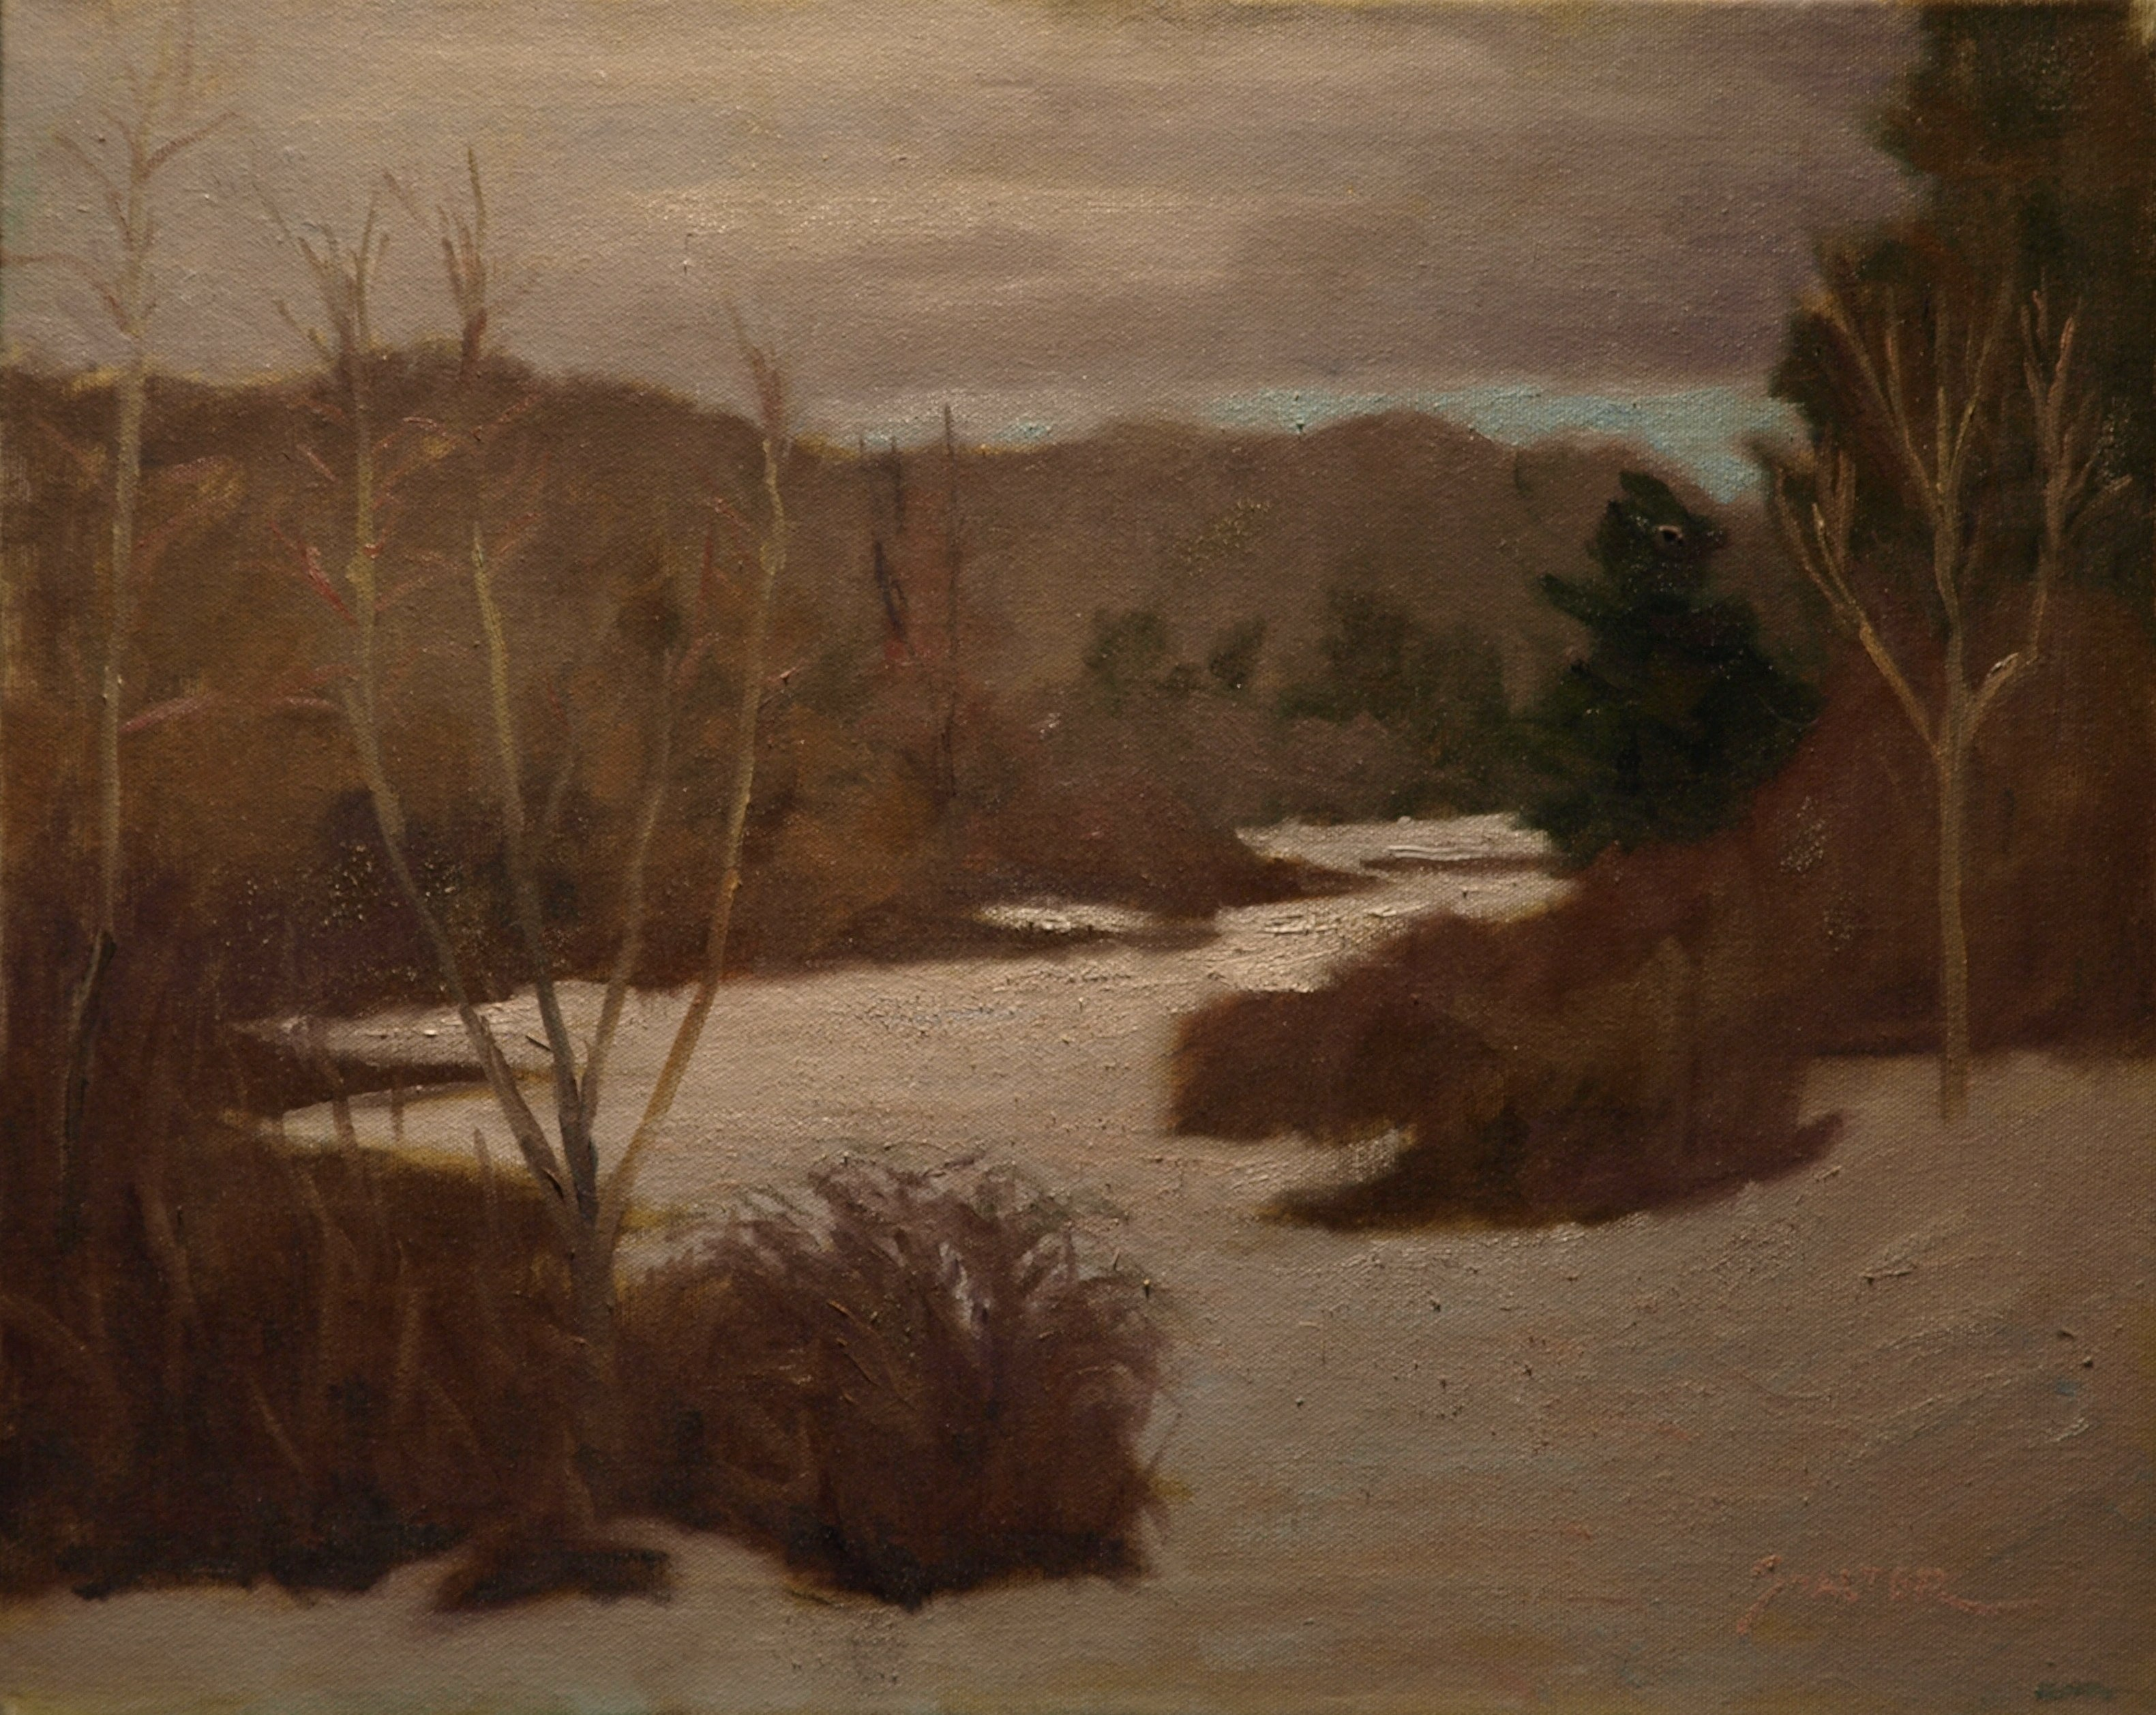 Snow Covered Pastures, Oil on Canvas, 16 x 20 Inches, by Richard Stalter, $425